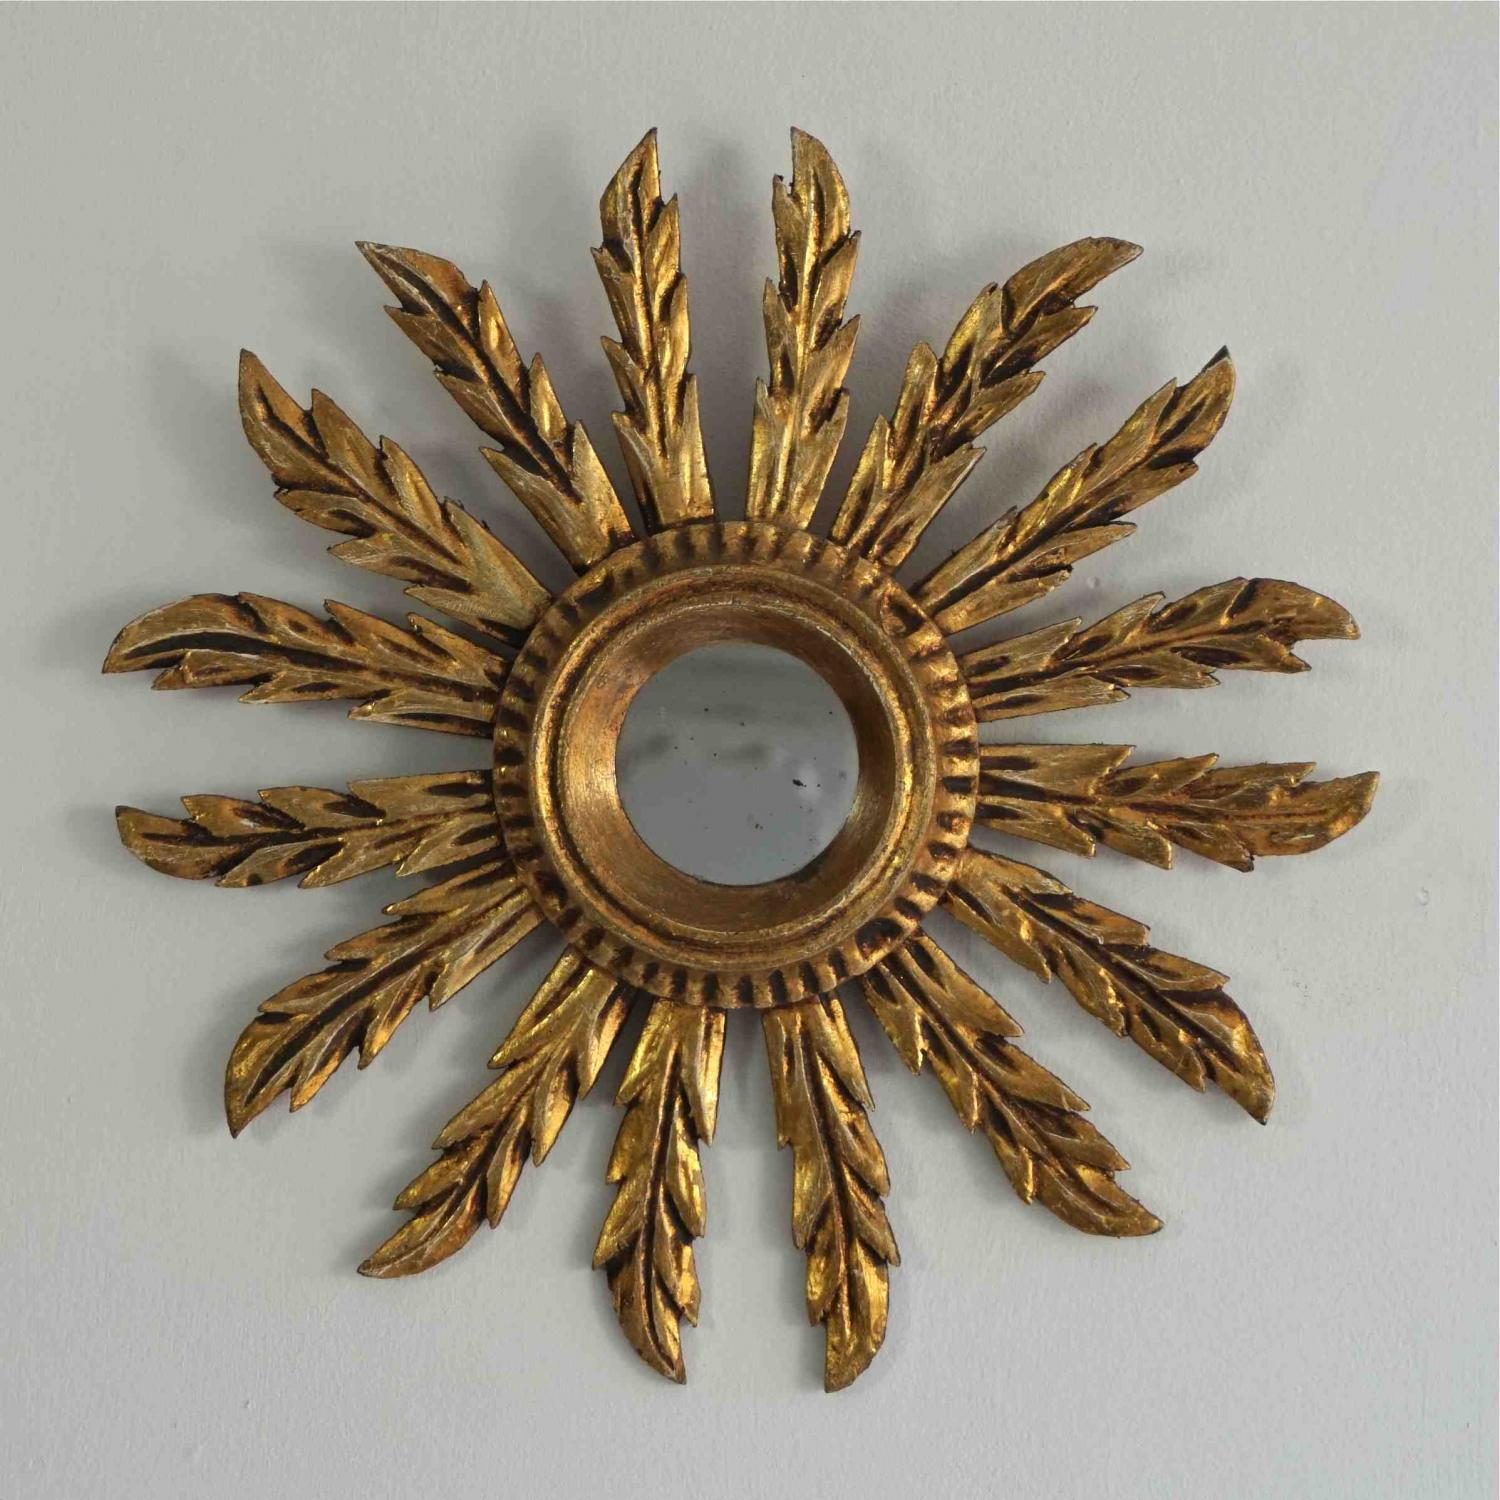 SMALL FRENCH VINTAGE GILT SUNBURST MIRROR